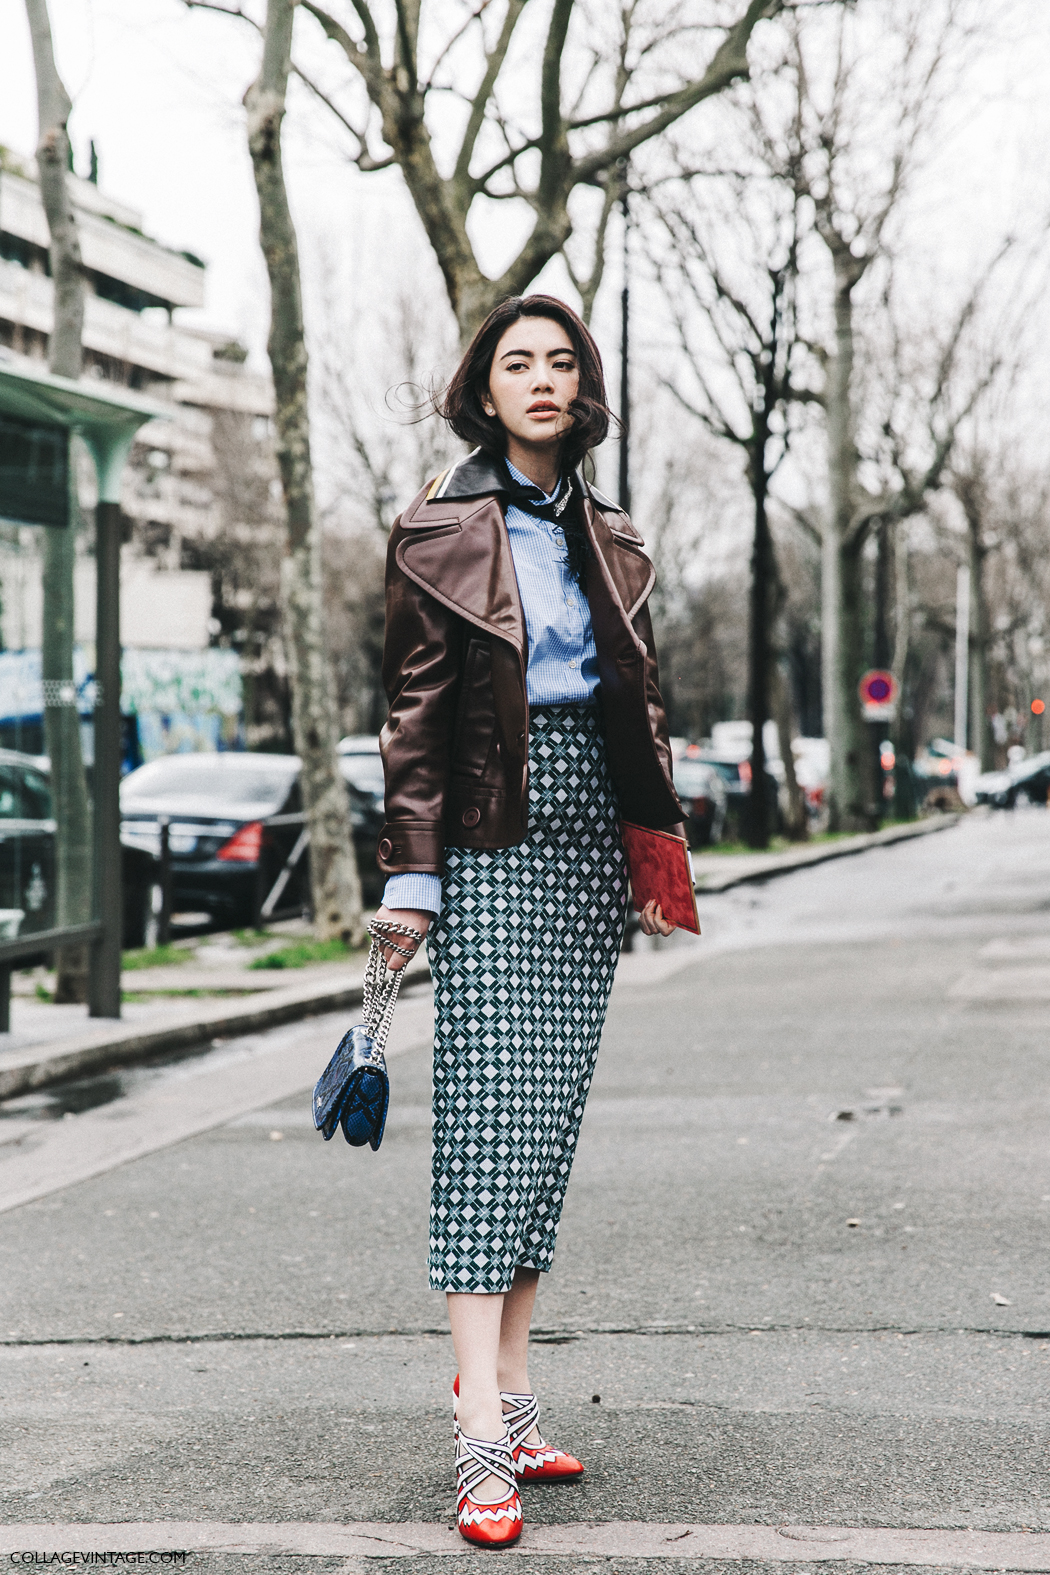 PFW-Paris_Fashion_Week_Fall_2016-Street_Style-Collage_Vintage-Miu_Miu-6